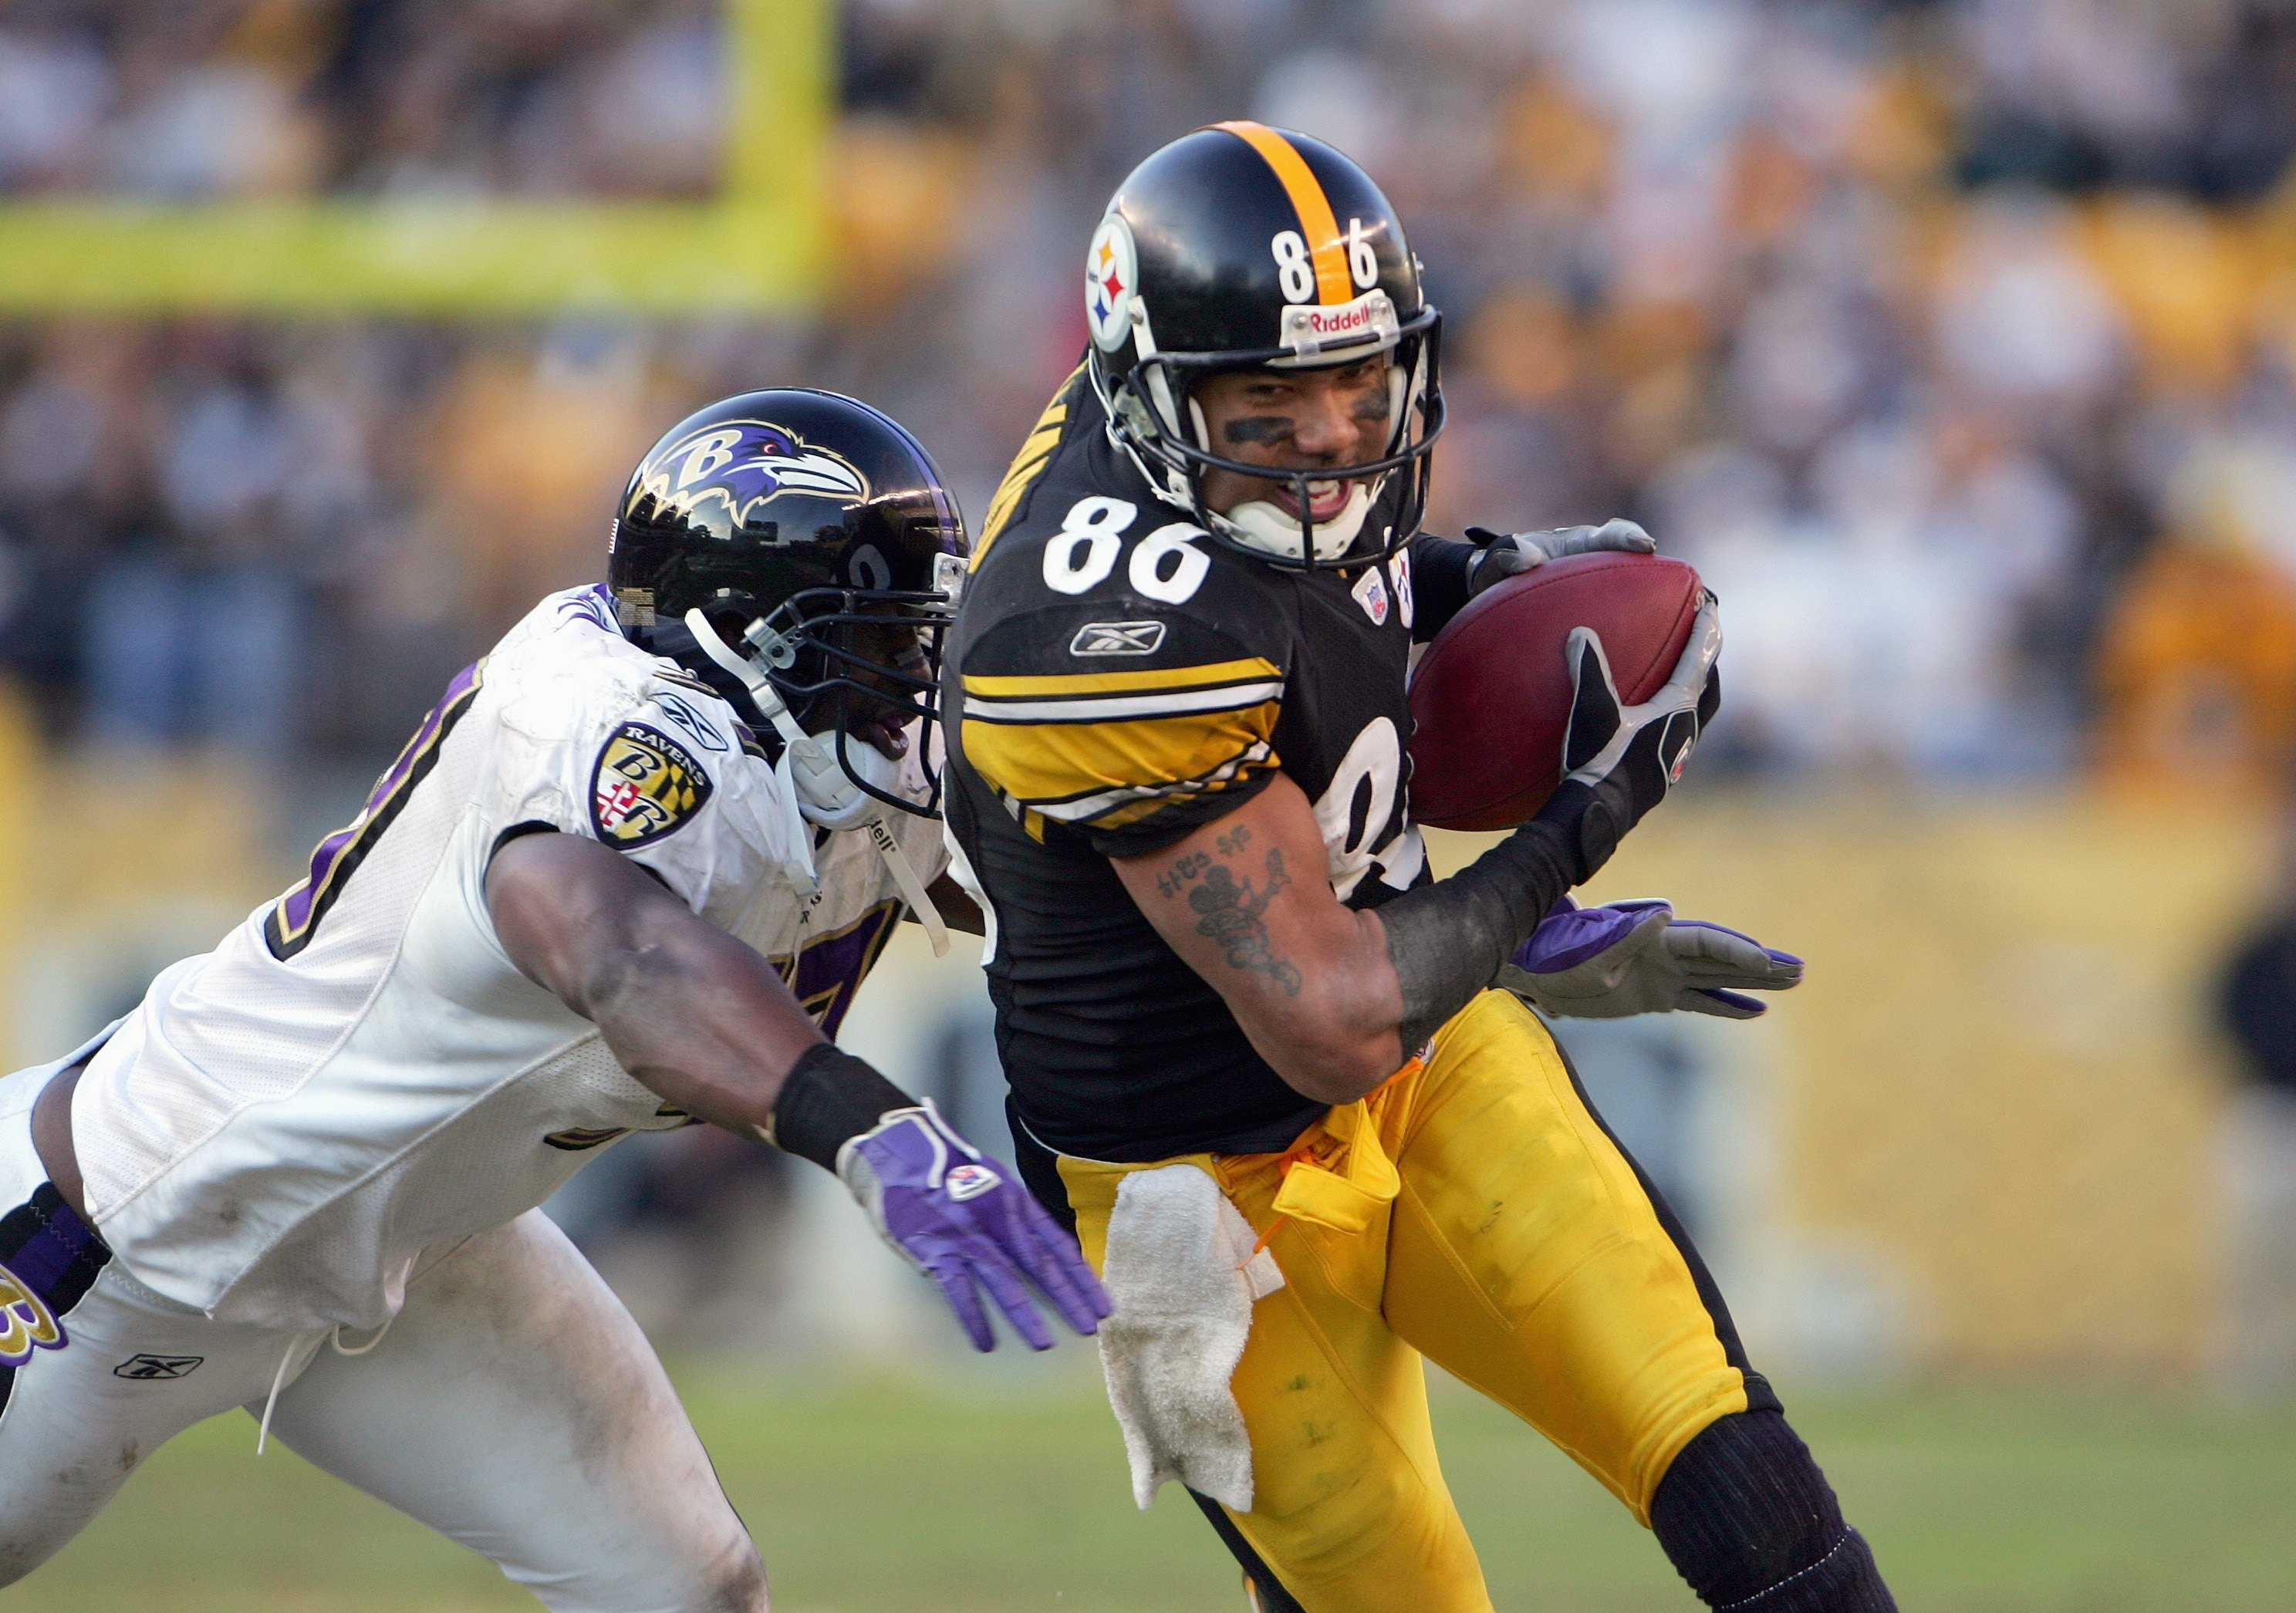 f0d9df31e79 PITTSBURGH - DECEMBER 24  Hines Ward  86 of the Pittsburgh Steelers carries  the ball